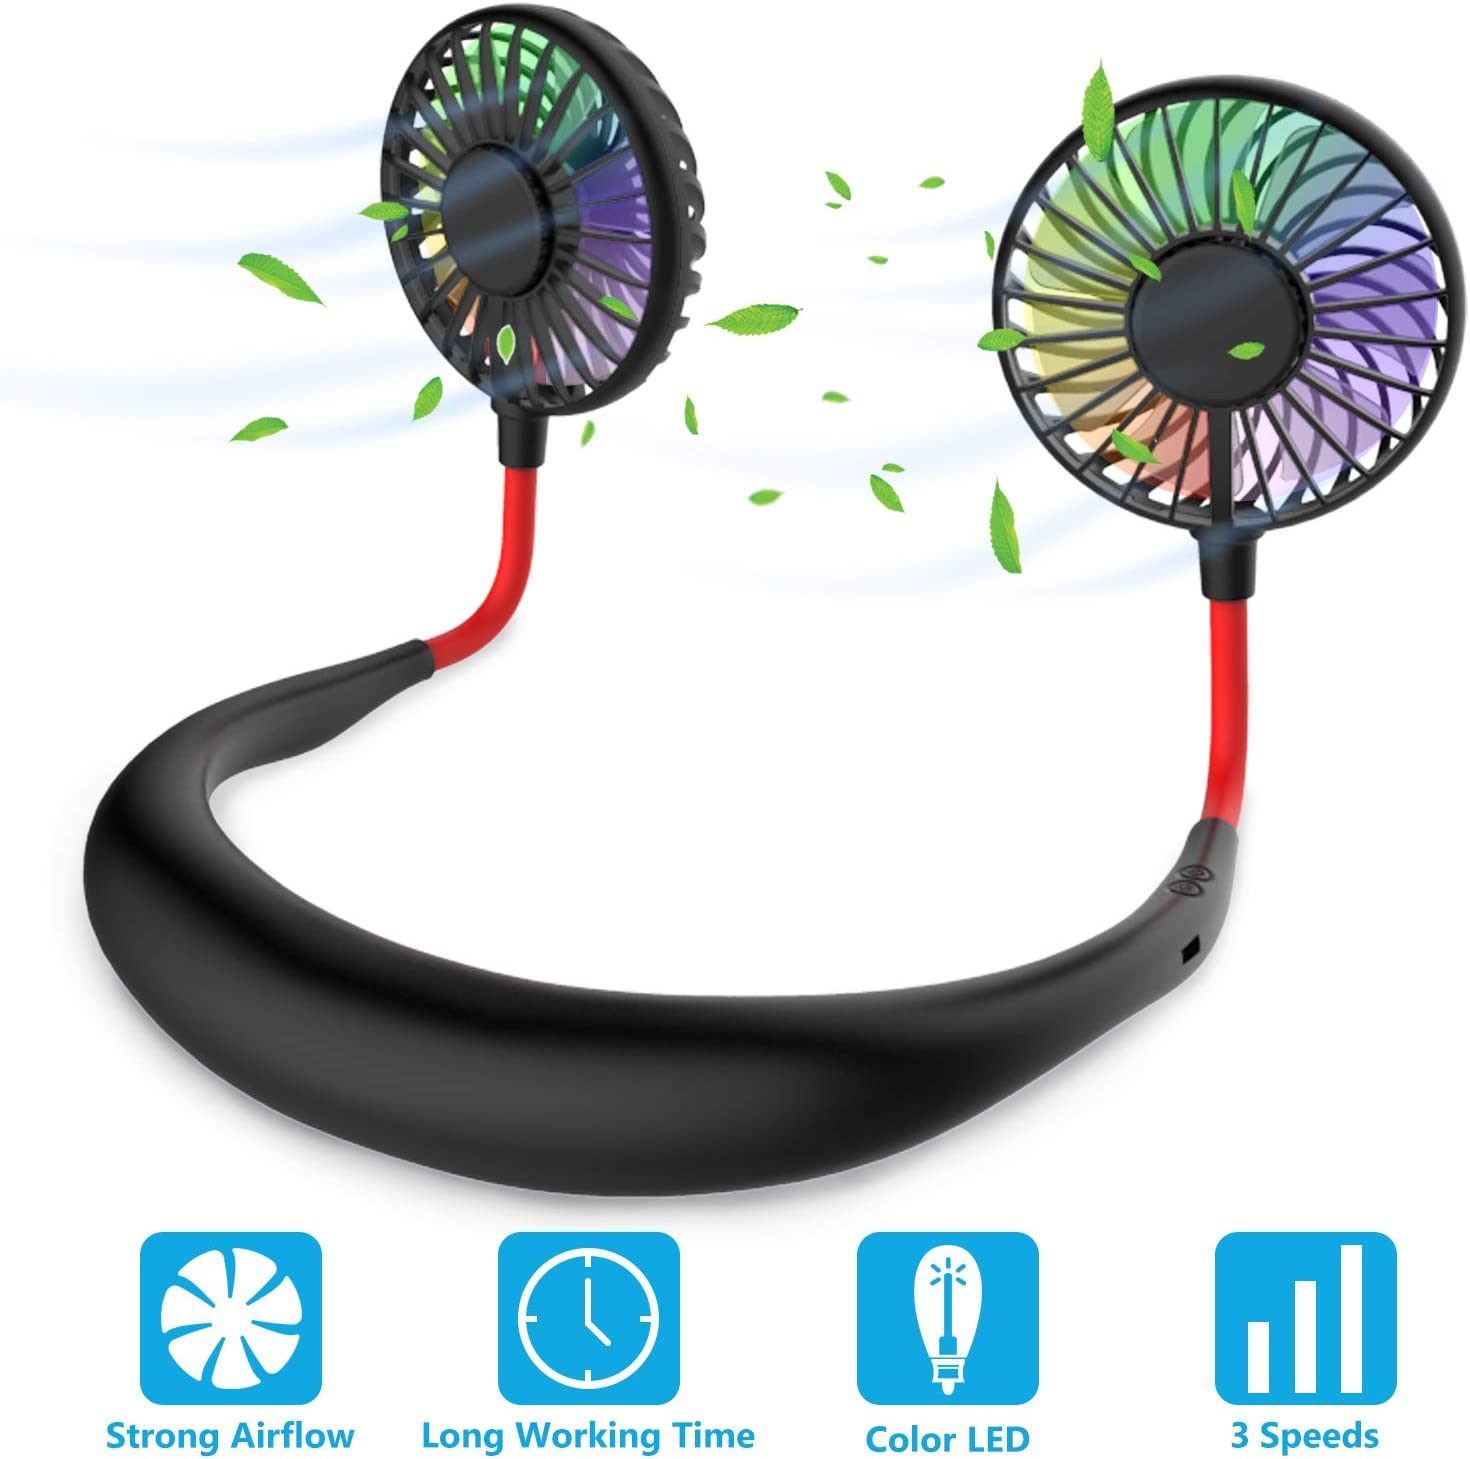 YUMGT Handheld Necklace Fan Mini Portable Outdoor Fan,3 Speeds USB Rechargeable Hands-Free Mini Fan,Wearable Necklance Fan,for Traveling Fishing Camping Outdoor